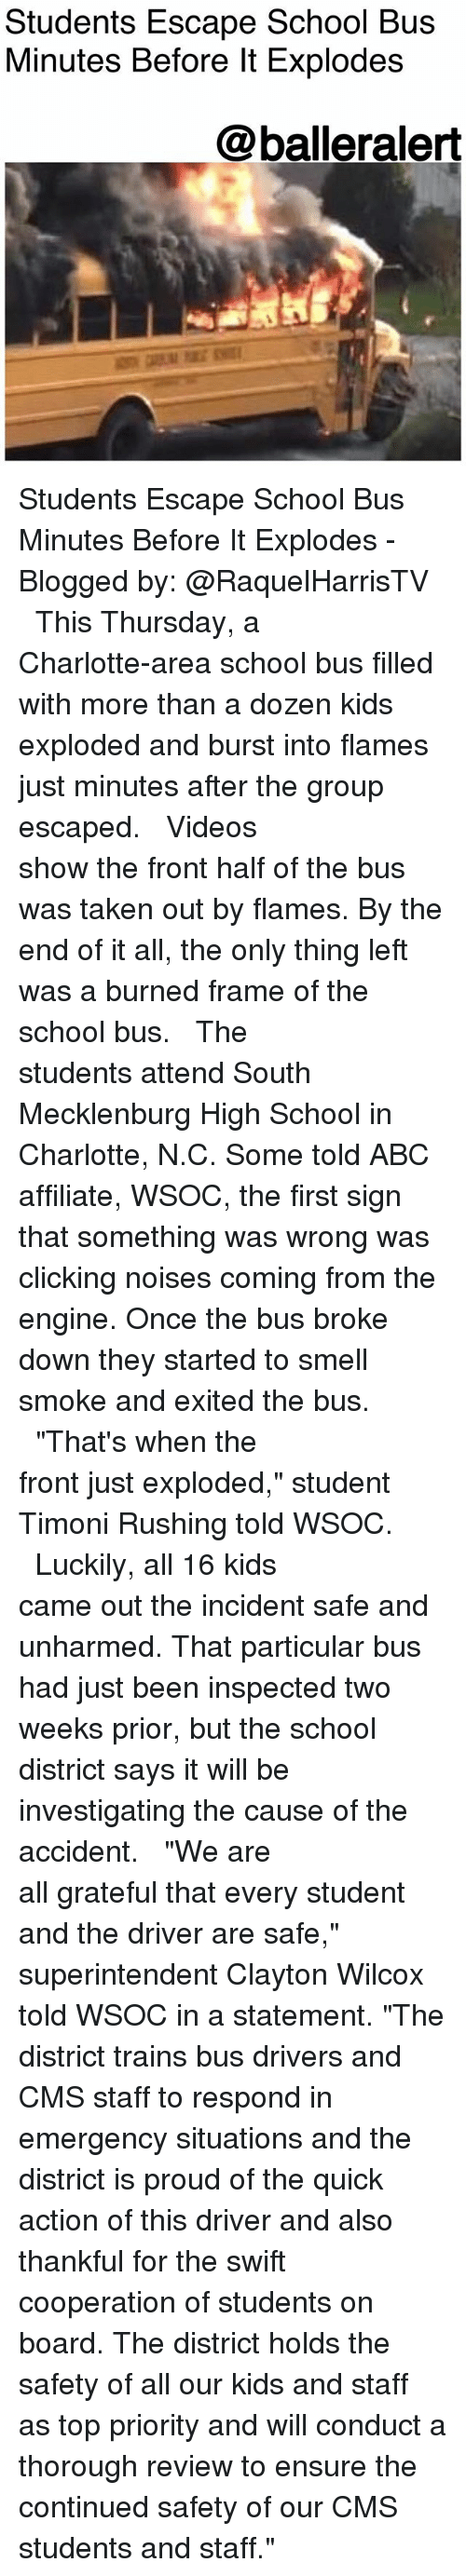 """Abc, Memes, and School: Students Escape School Bus  Minutes Before lt Explodes  @balleralert Students Escape School Bus Minutes Before It Explodes -Blogged by: @RaquelHarrisTV ⠀⠀⠀⠀⠀⠀⠀⠀⠀ ⠀⠀⠀⠀⠀⠀⠀⠀⠀ This Thursday, a Charlotte-area school bus filled with more than a dozen kids exploded and burst into flames just minutes after the group escaped. ⠀⠀⠀⠀⠀⠀⠀⠀⠀ ⠀⠀⠀⠀⠀⠀⠀⠀⠀ Videos show the front half of the bus was taken out by flames. By the end of it all, the only thing left was a burned frame of the school bus. ⠀⠀⠀⠀⠀⠀⠀⠀⠀ ⠀⠀⠀⠀⠀⠀⠀⠀⠀ The students attend South Mecklenburg High School in Charlotte, N.C. Some told ABC affiliate, WSOC, the first sign that something was wrong was clicking noises coming from the engine. Once the bus broke down they started to smell smoke and exited the bus. ⠀⠀⠀⠀⠀⠀⠀⠀⠀ ⠀⠀⠀⠀⠀⠀⠀⠀⠀ """"That's when the front just exploded,"""" student Timoni Rushing told WSOC. ⠀⠀⠀⠀⠀⠀⠀⠀⠀ ⠀⠀⠀⠀⠀⠀⠀⠀⠀ Luckily, all 16 kids came out the incident safe and unharmed. That particular bus had just been inspected two weeks prior, but the school district says it will be investigating the cause of the accident. ⠀⠀⠀⠀⠀⠀⠀⠀⠀ ⠀⠀⠀⠀⠀⠀⠀⠀⠀ """"We are all grateful that every student and the driver are safe,"""" superintendent Clayton Wilcox told WSOC in a statement. """"The district trains bus drivers and CMS staff to respond in emergency situations and the district is proud of the quick action of this driver and also thankful for the swift cooperation of students on board. The district holds the safety of all our kids and staff as top priority and will conduct a thorough review to ensure the continued safety of our CMS students and staff."""""""